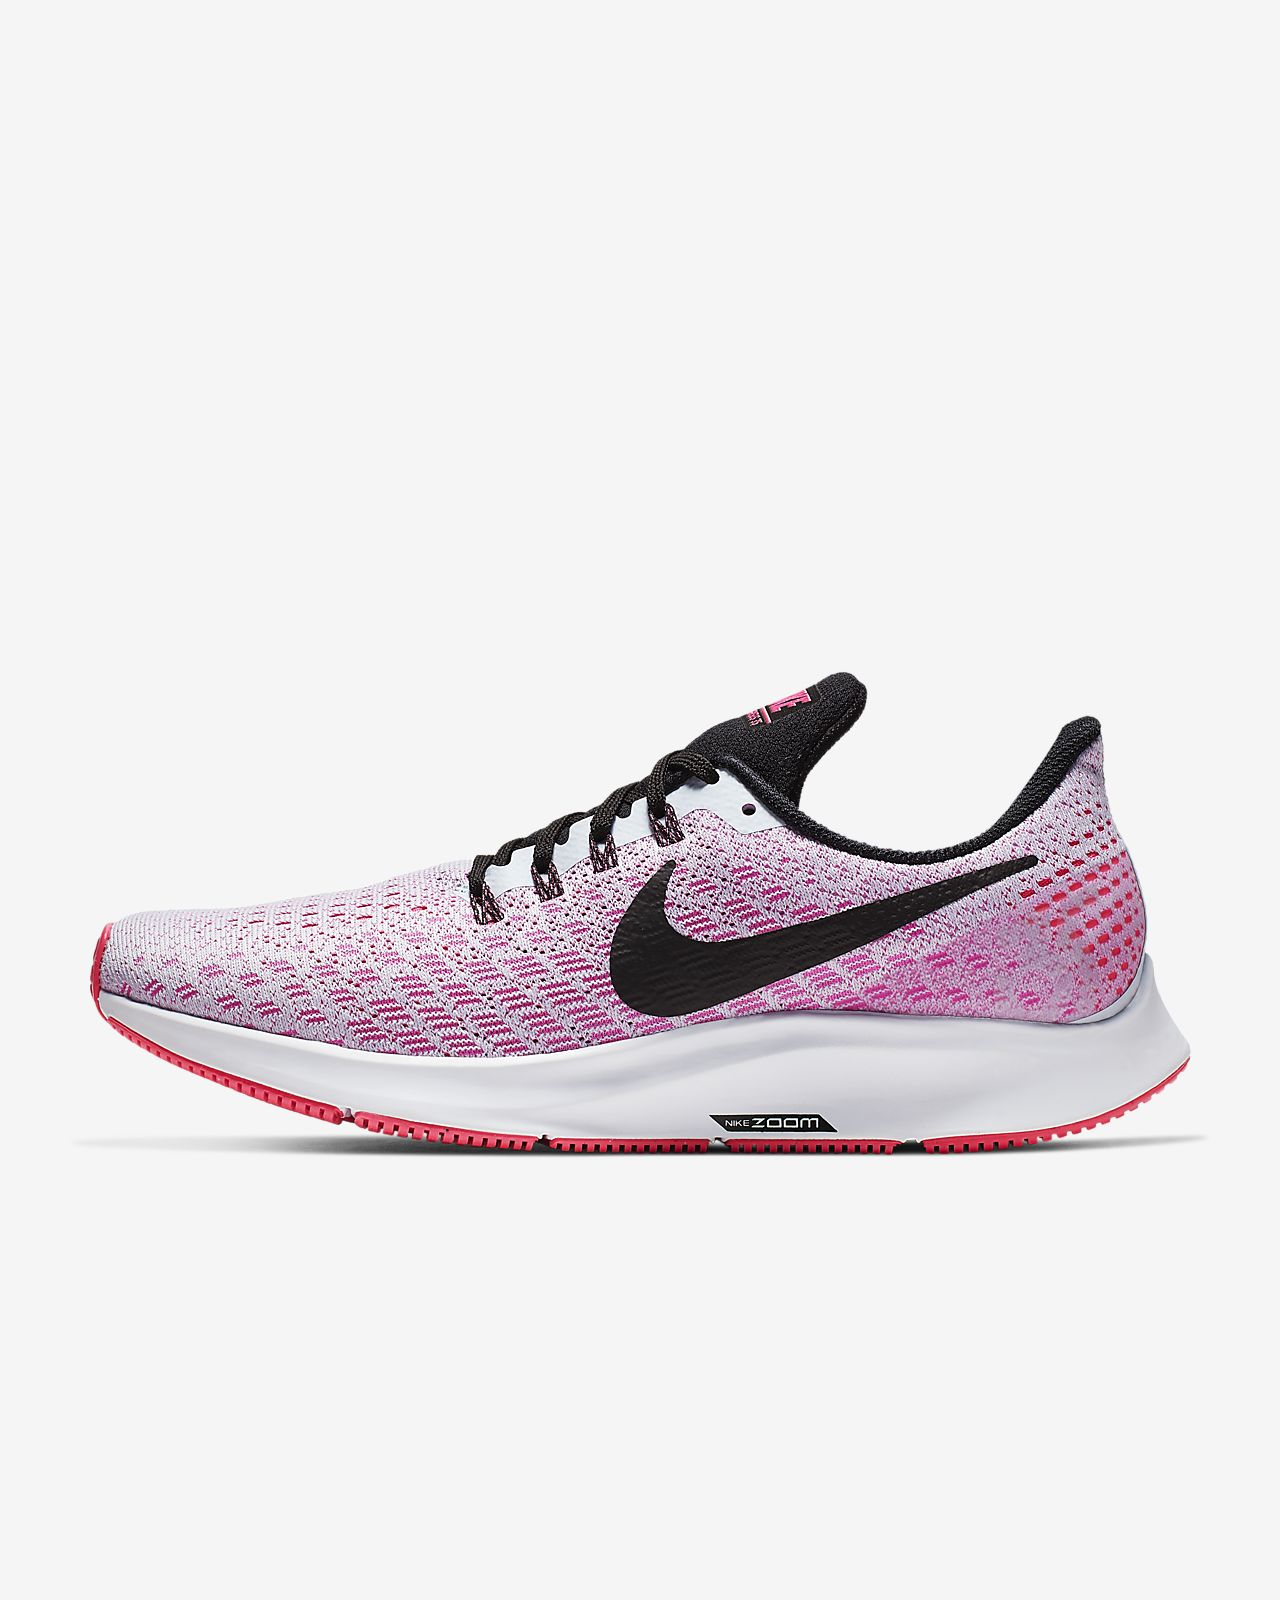 40495de83b30 Nike Air Zoom Pegasus 35 Women s Running Shoe. Nike.com